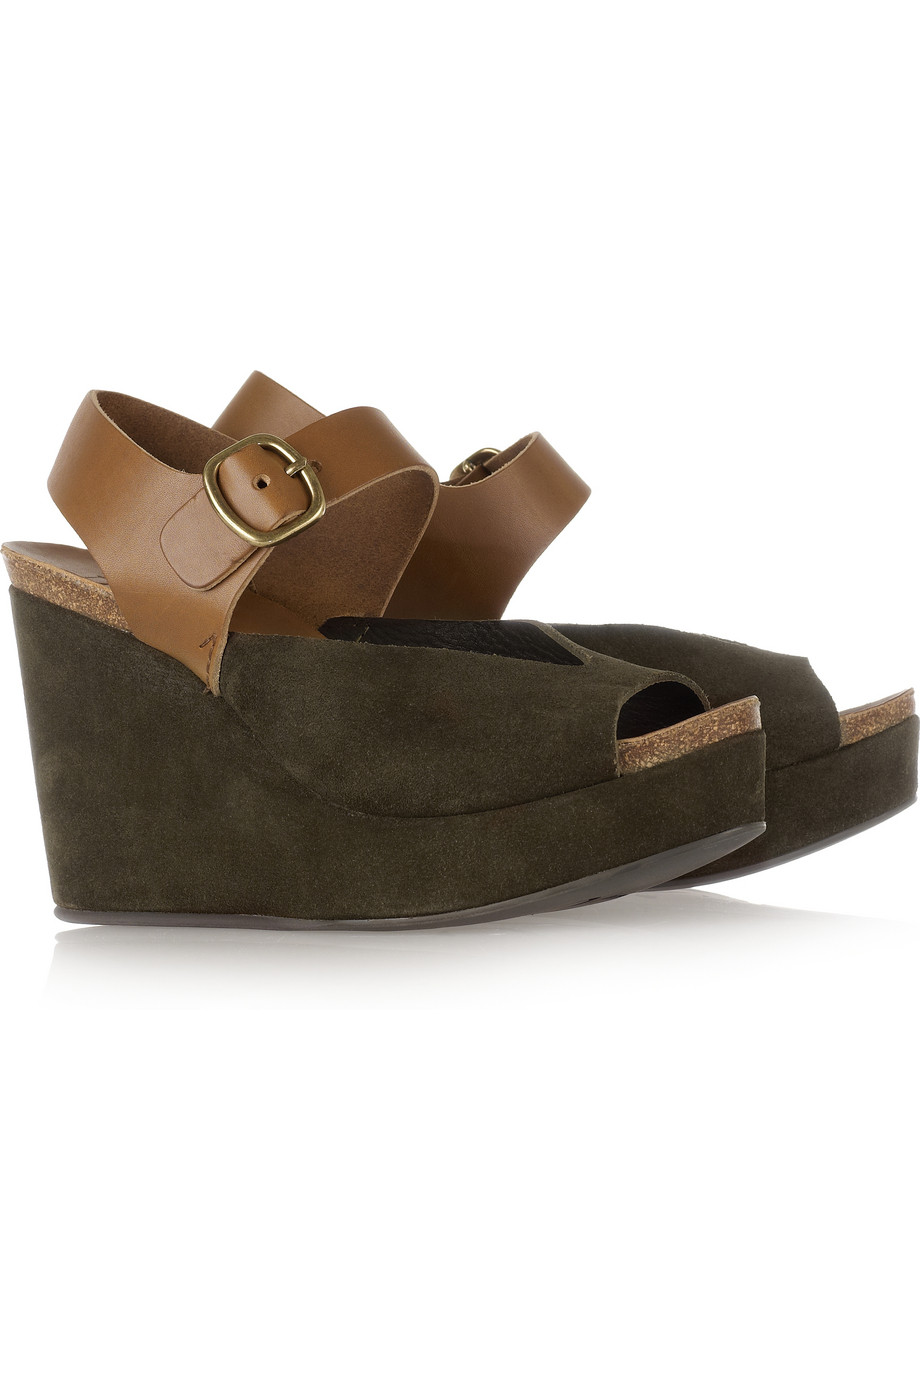 pedro garcia marnie suede and leather wedge sandals in